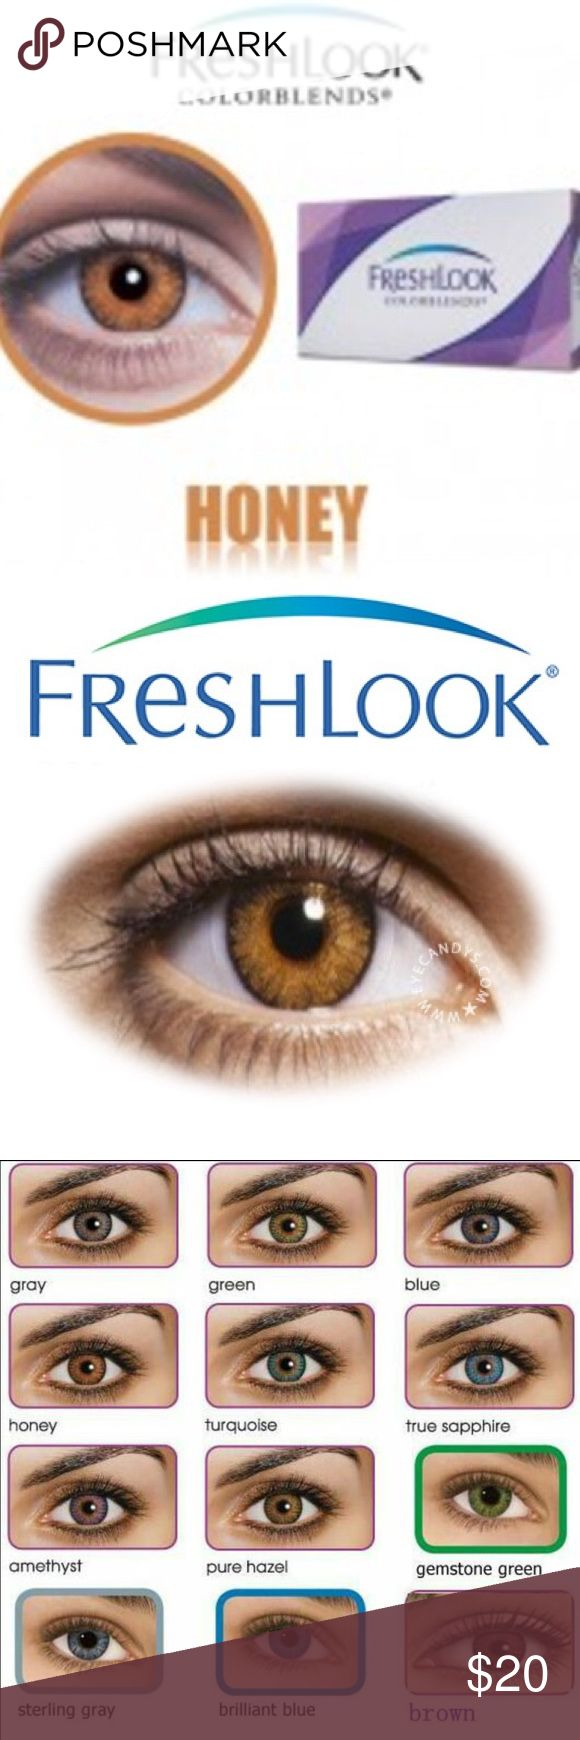 2 Boxes-2 pair Honey Freshlooks Contacts **Can choose your own colors ALL colors are available**  Product Information: FreshLook COLORBLENDS All products are brand new in sealed box. ONE box contains one pair of lenses. Expiration date: 2019-2020 14.5 diameter  Will last 6 to 8 months with proper care.  NON - prescription lenes No returns, all sales final, due to health reasons.  Other colors available: Amethyst Hazel Gray Brilliant Blue  Gemstone Green  Honey  Turquoise  Brown True Sapphire…